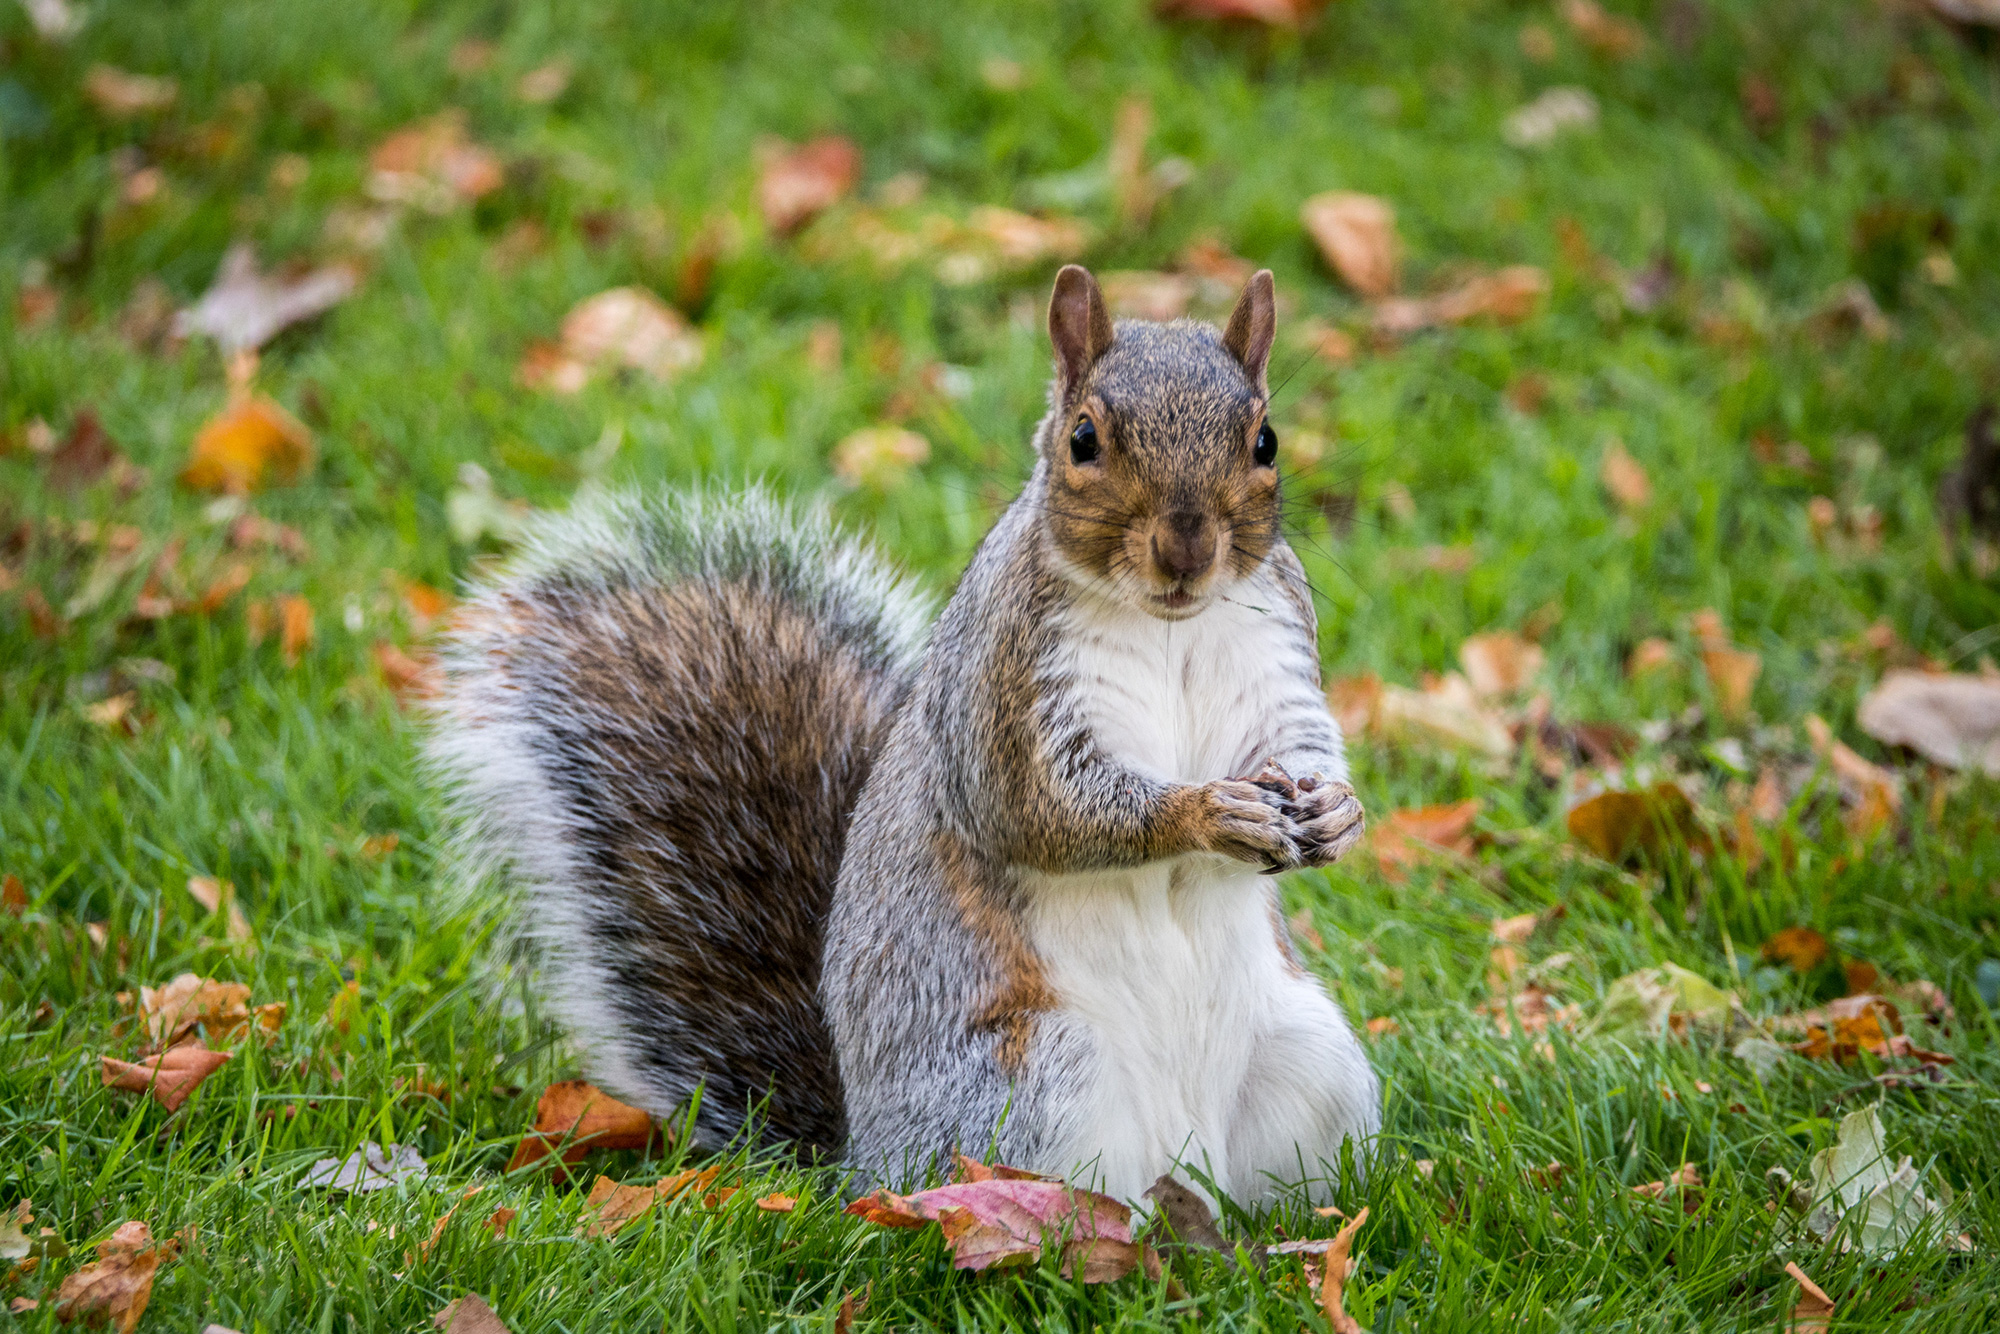 WATCH: Woman Who Brought 'Emotional Support' Squirrel on Plane Removed by Police